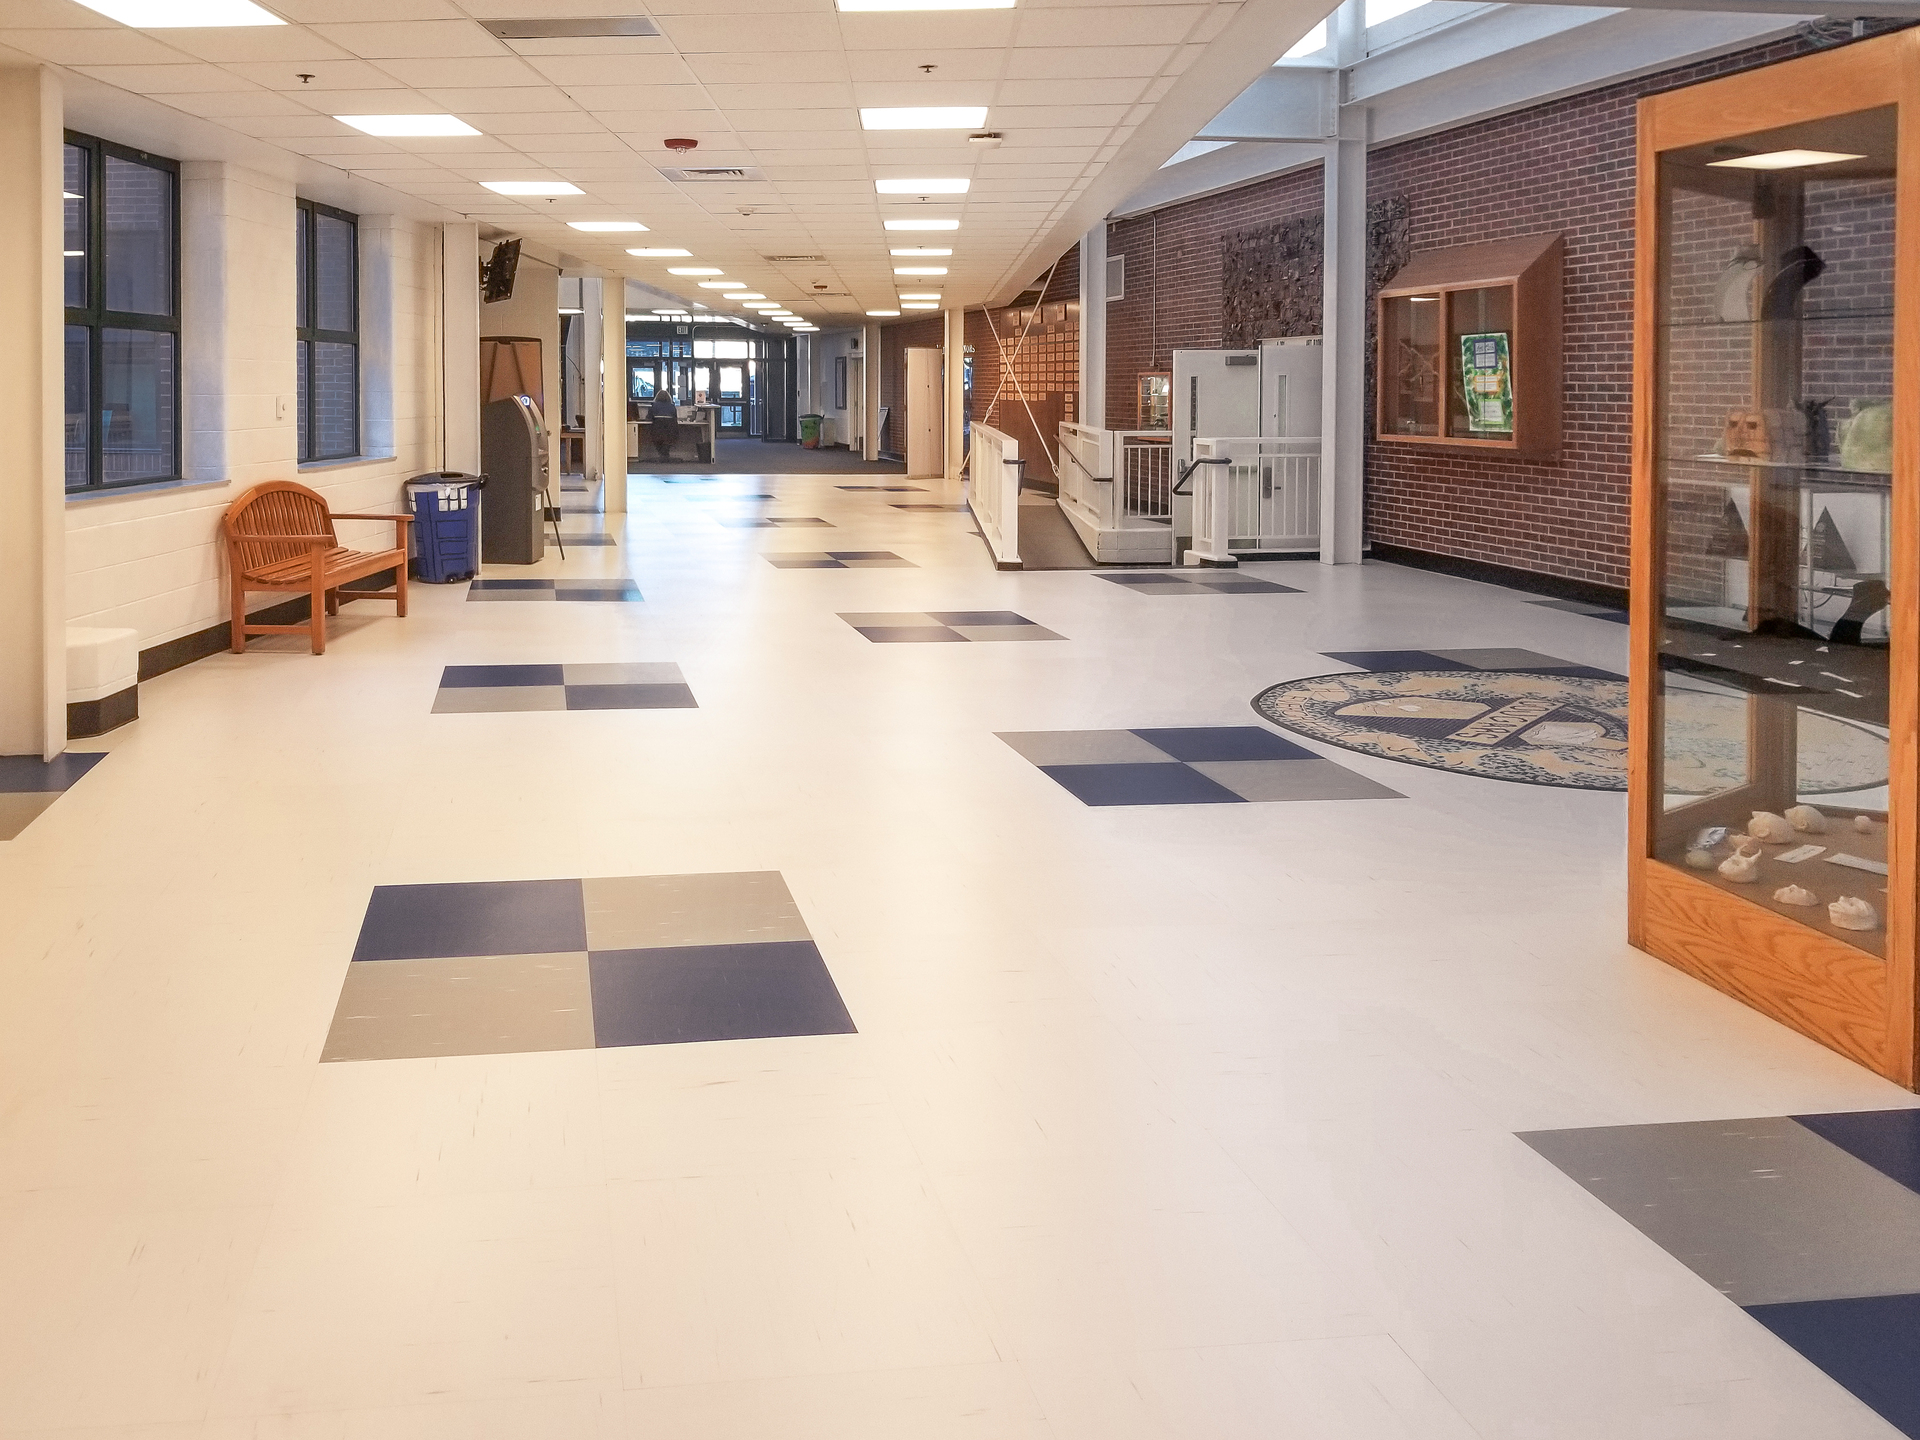 The flooring throughout Evergreen High school features our Frost White, Mystic Silver and Royal Blue Rikett Quartz Tile. Our RQT line of quartz tile flooring manufactured with 70% natural quartz minerals, which make it a very hard, durable and dimensionally stable tile that will not break or tear like other quartz floor tiles. On the MOH's scale of hardness, Diamonds are the hardest mineral at 10. Quartz measures a 7 on the MOH's scale. The primary contents for VCT and LVT, Calcium Carbonate or Limestone, measure a 3. On the MOHs scale. Clearly, Quartz is the toughest resilient flooring material.